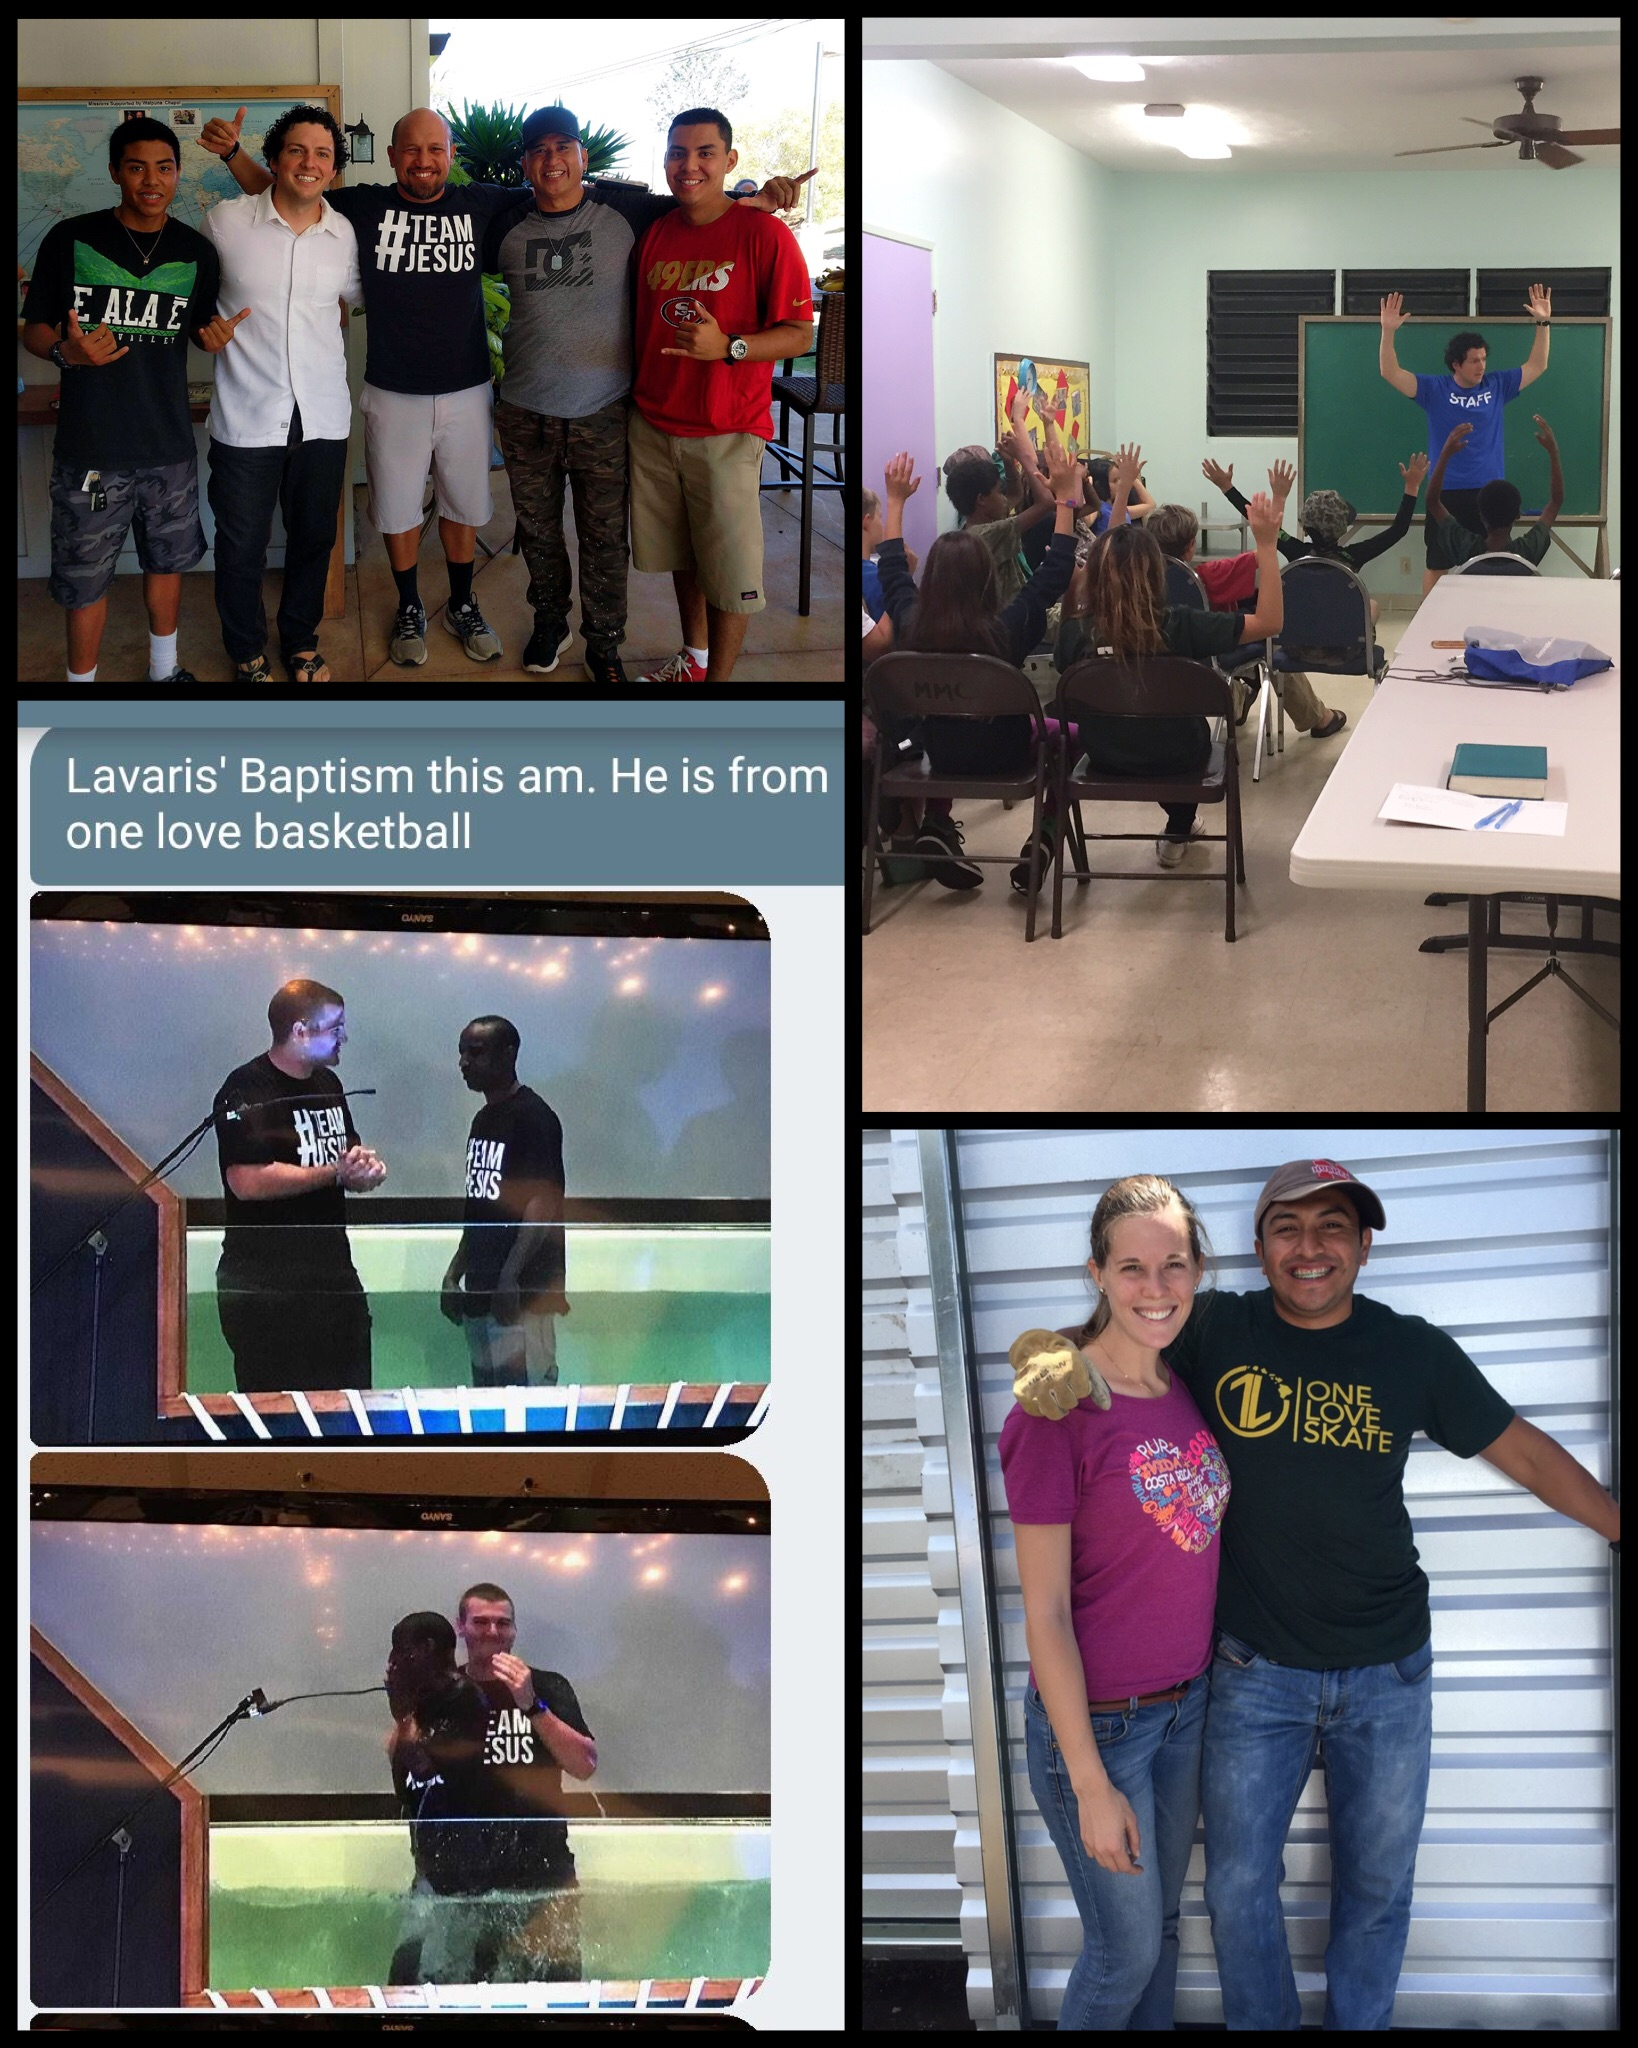 Recent 1L Sightings this week (Clockwise). Team Jesus action at Waipuna Chapel, Joshua sharing the 1L of Jesus from 1 John 4:9 at Pukalani Baptist Church's Awana clubs last Wednesday,Missionary Callie ministering in Guatemala, &Pastor Jeff Marburger baptizing a friend named Lavaris who experienced the One Love of Jesus through 1L Basketball.